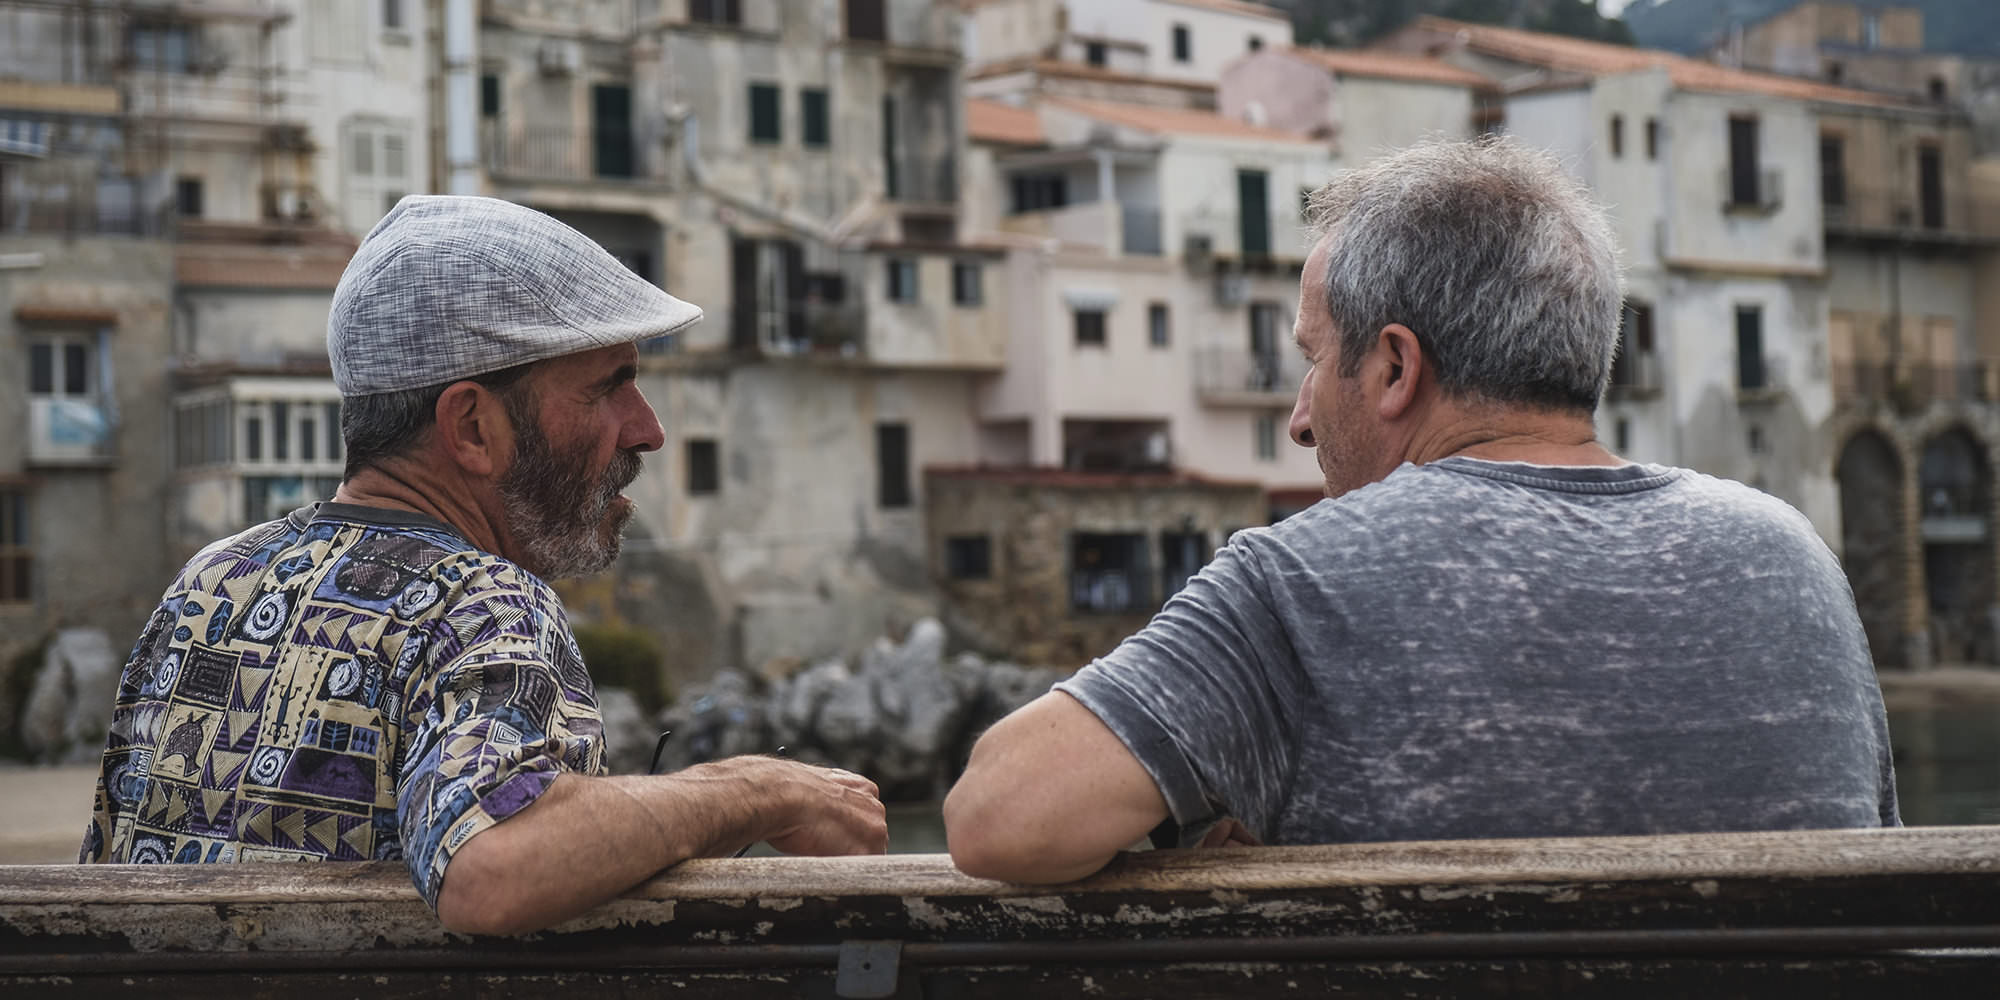 Two older white men sitting together on a bench, engaging in conversation. Relationships between friends are also important for bipolar disorder.